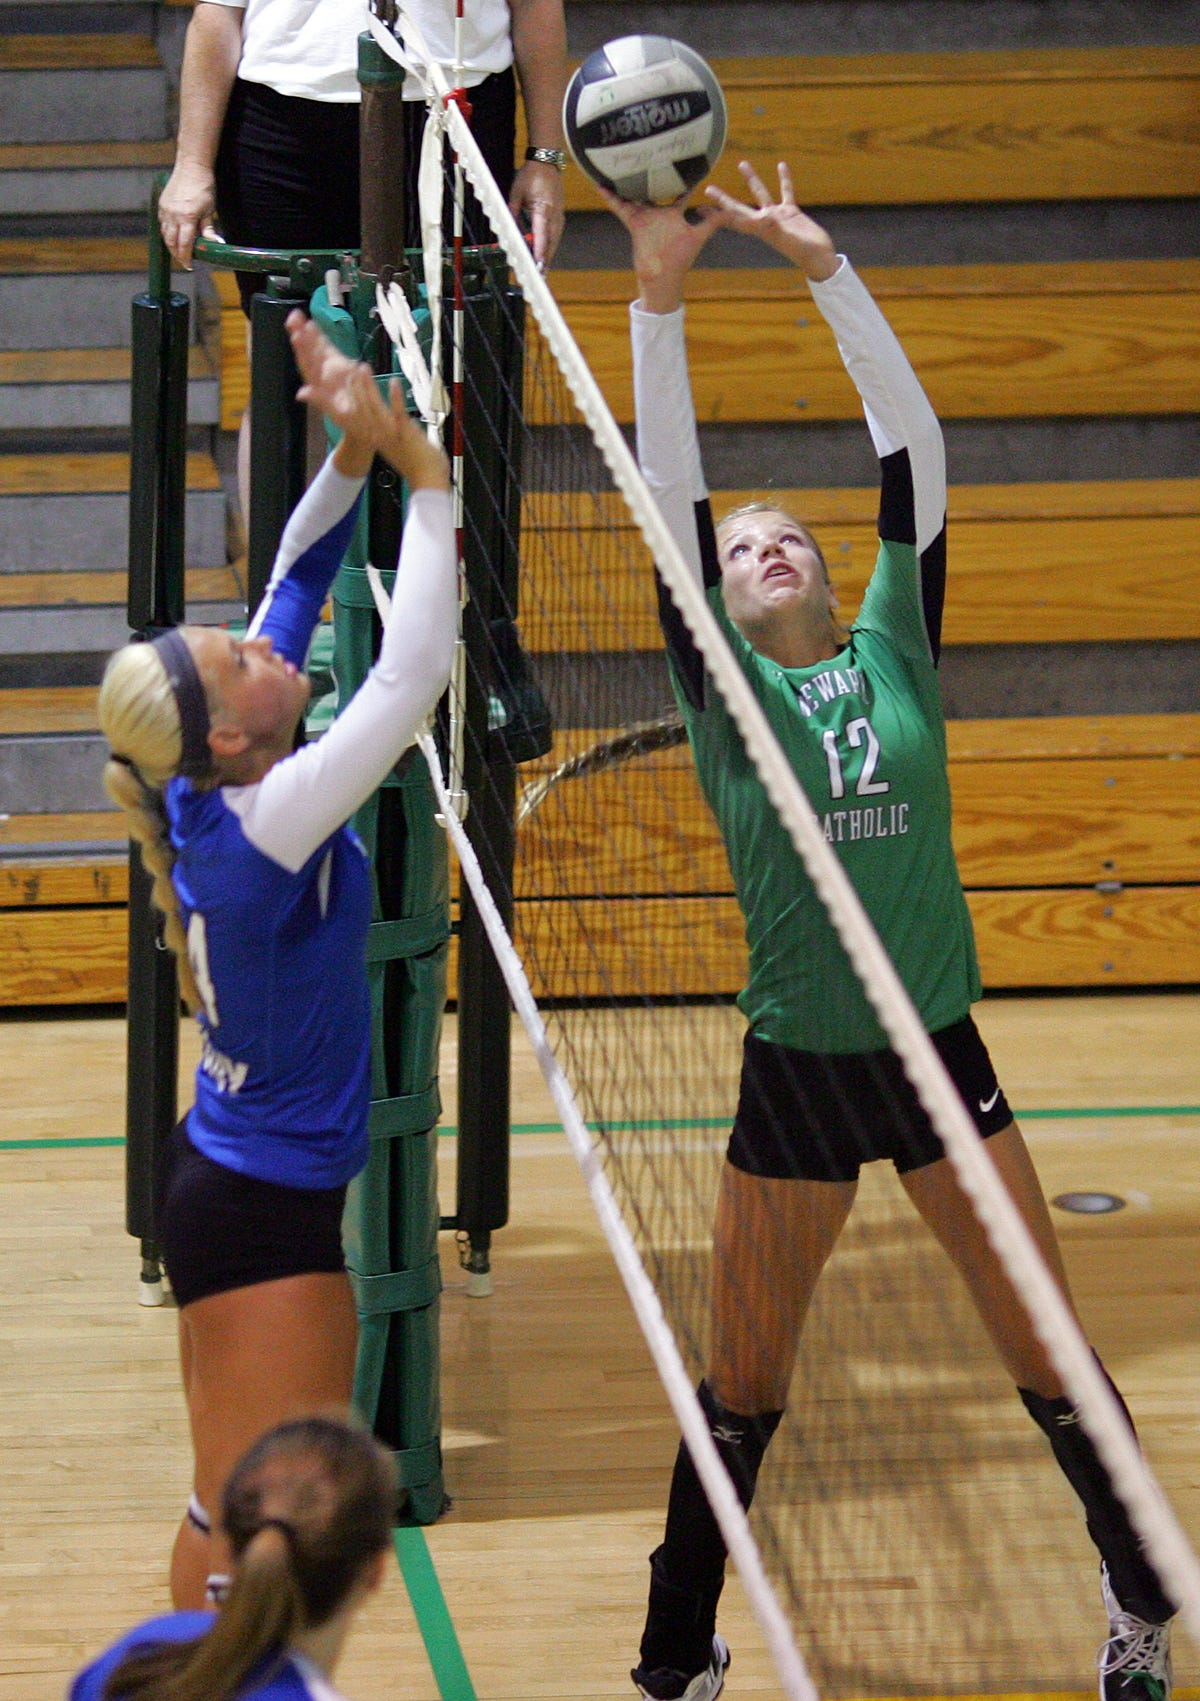 Newark Catholic's Megan Stanton tips the ball over the net Friday against Bishop Ready during the Newark Catholic Preview.